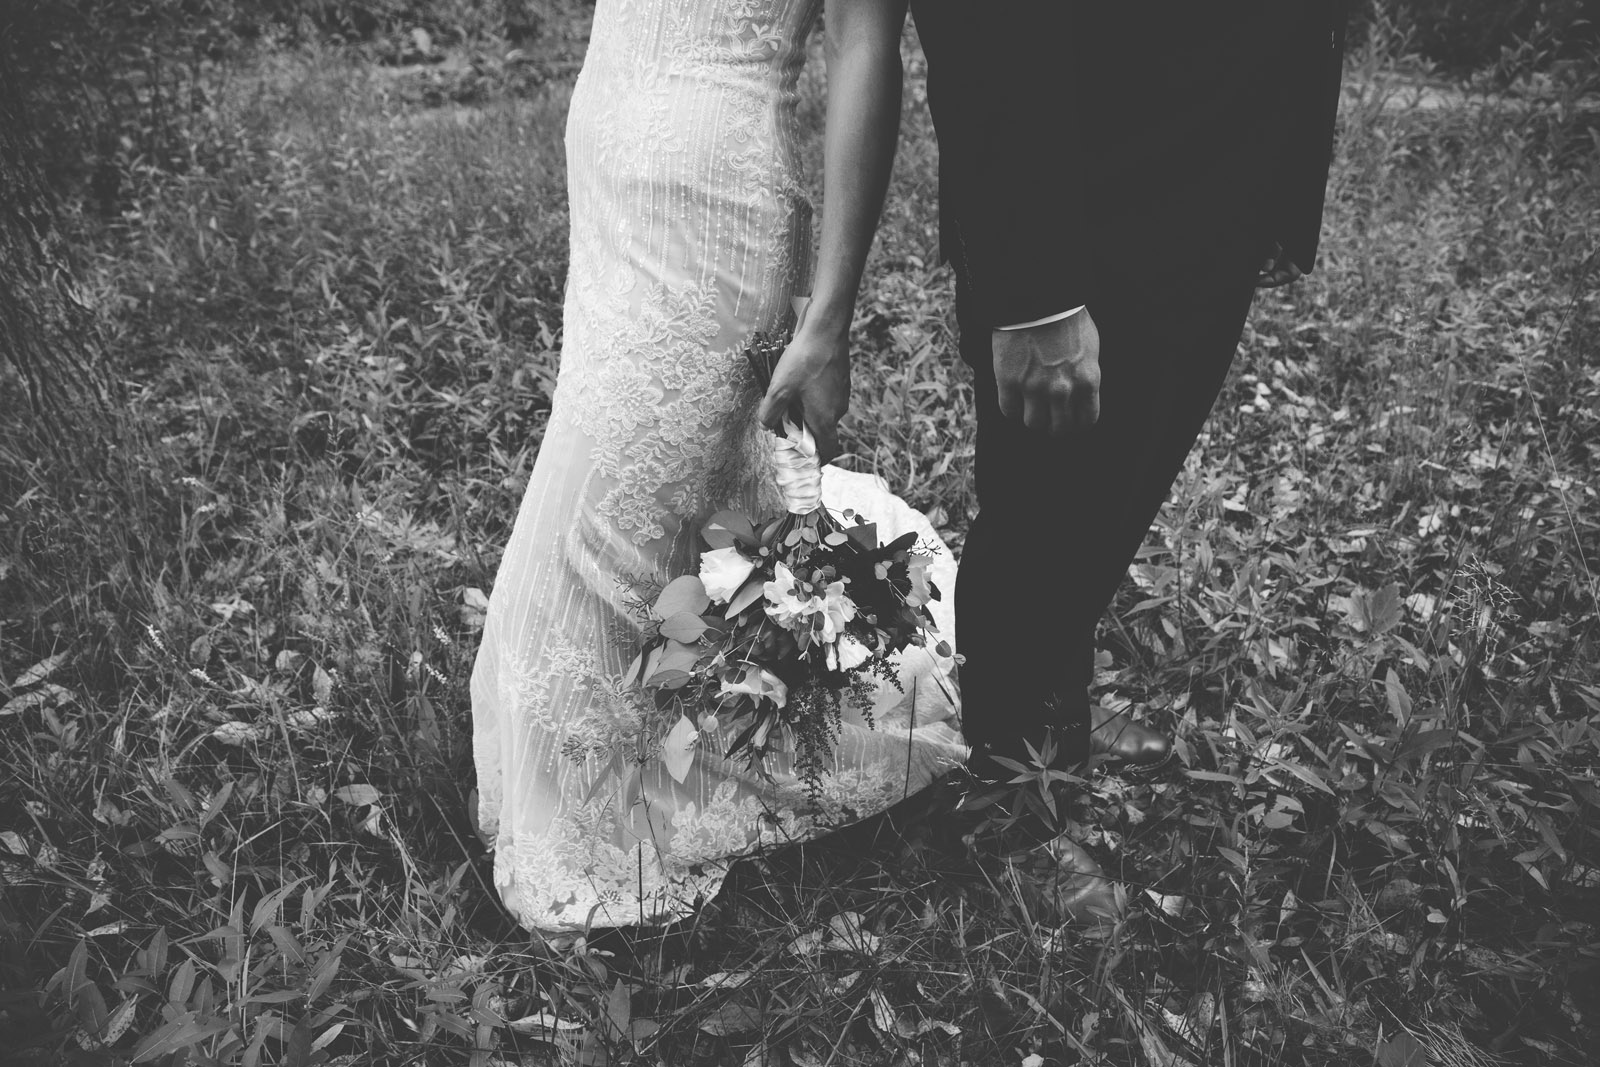 129-beautiful-bride-and-groom-photojournalist-portraits-at-elopement-wedding-in-durango-colorado-forest